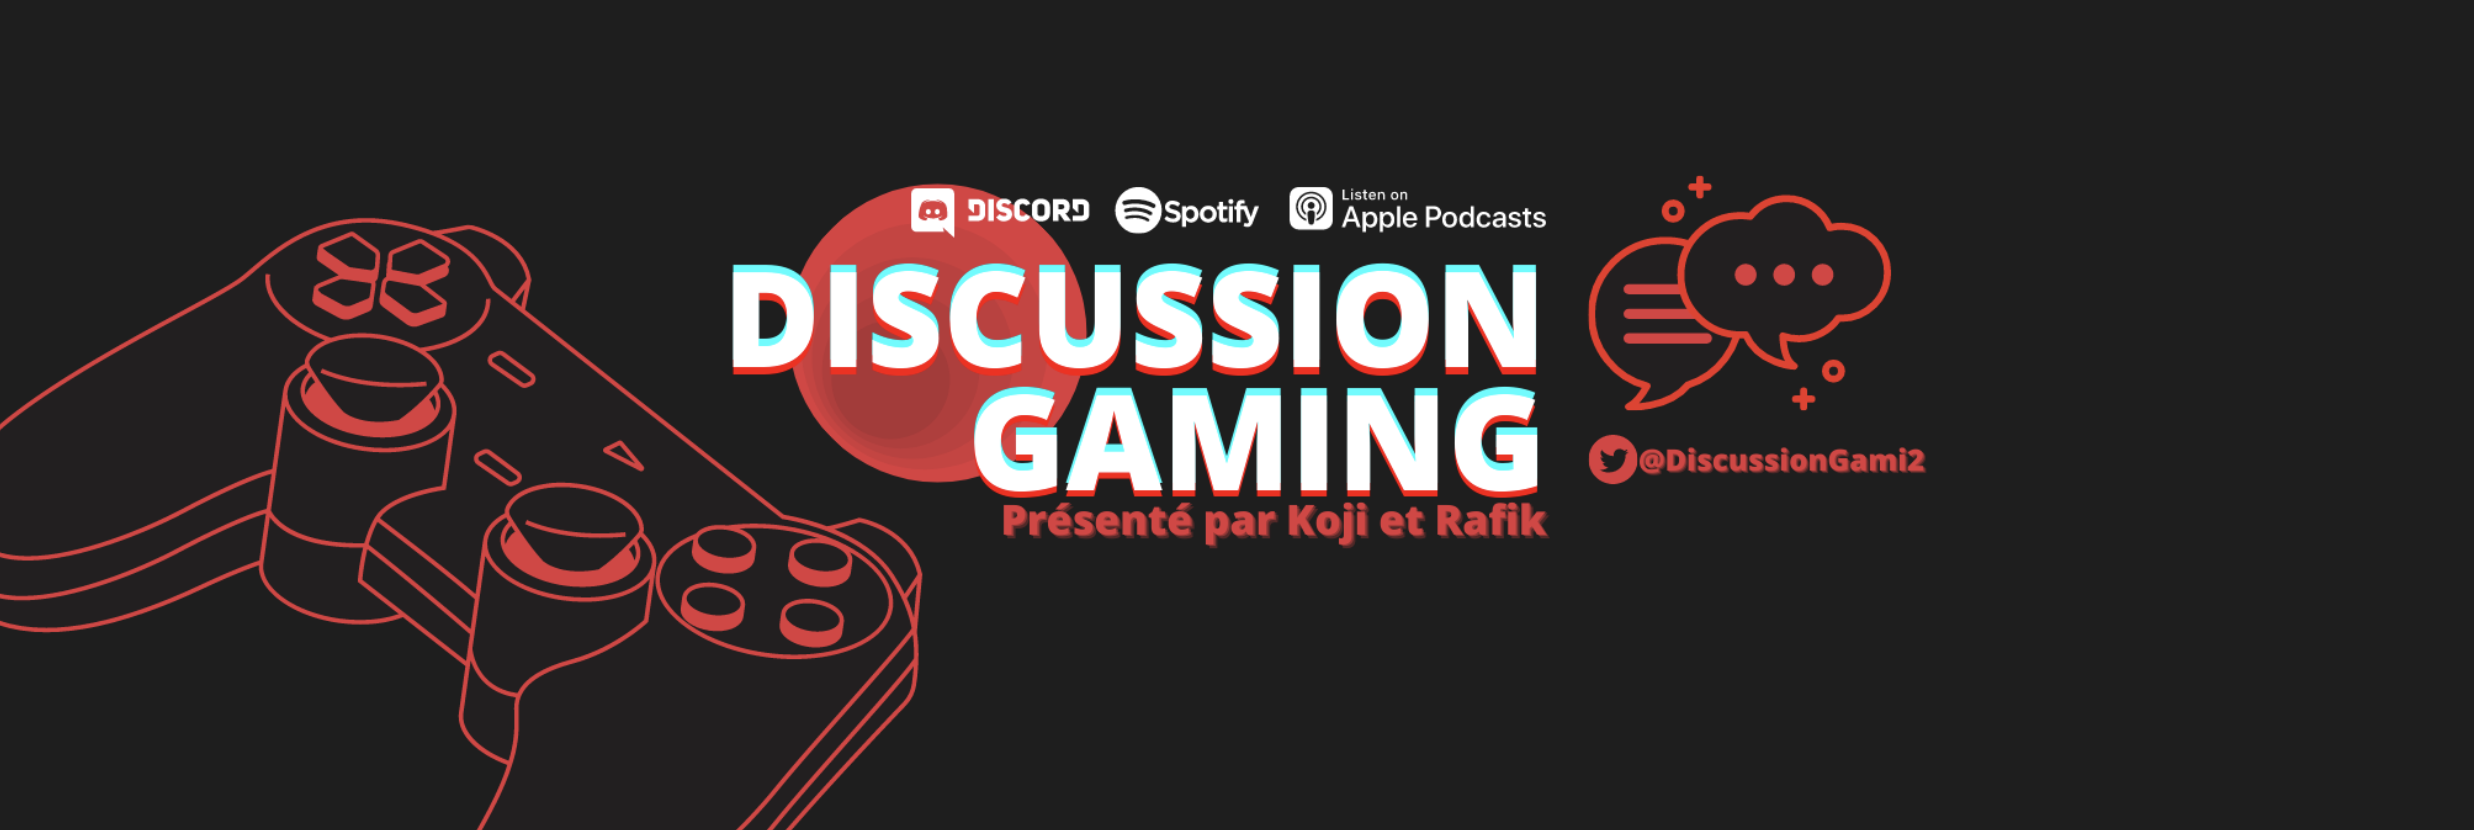 Discussion Gaming le Podcast